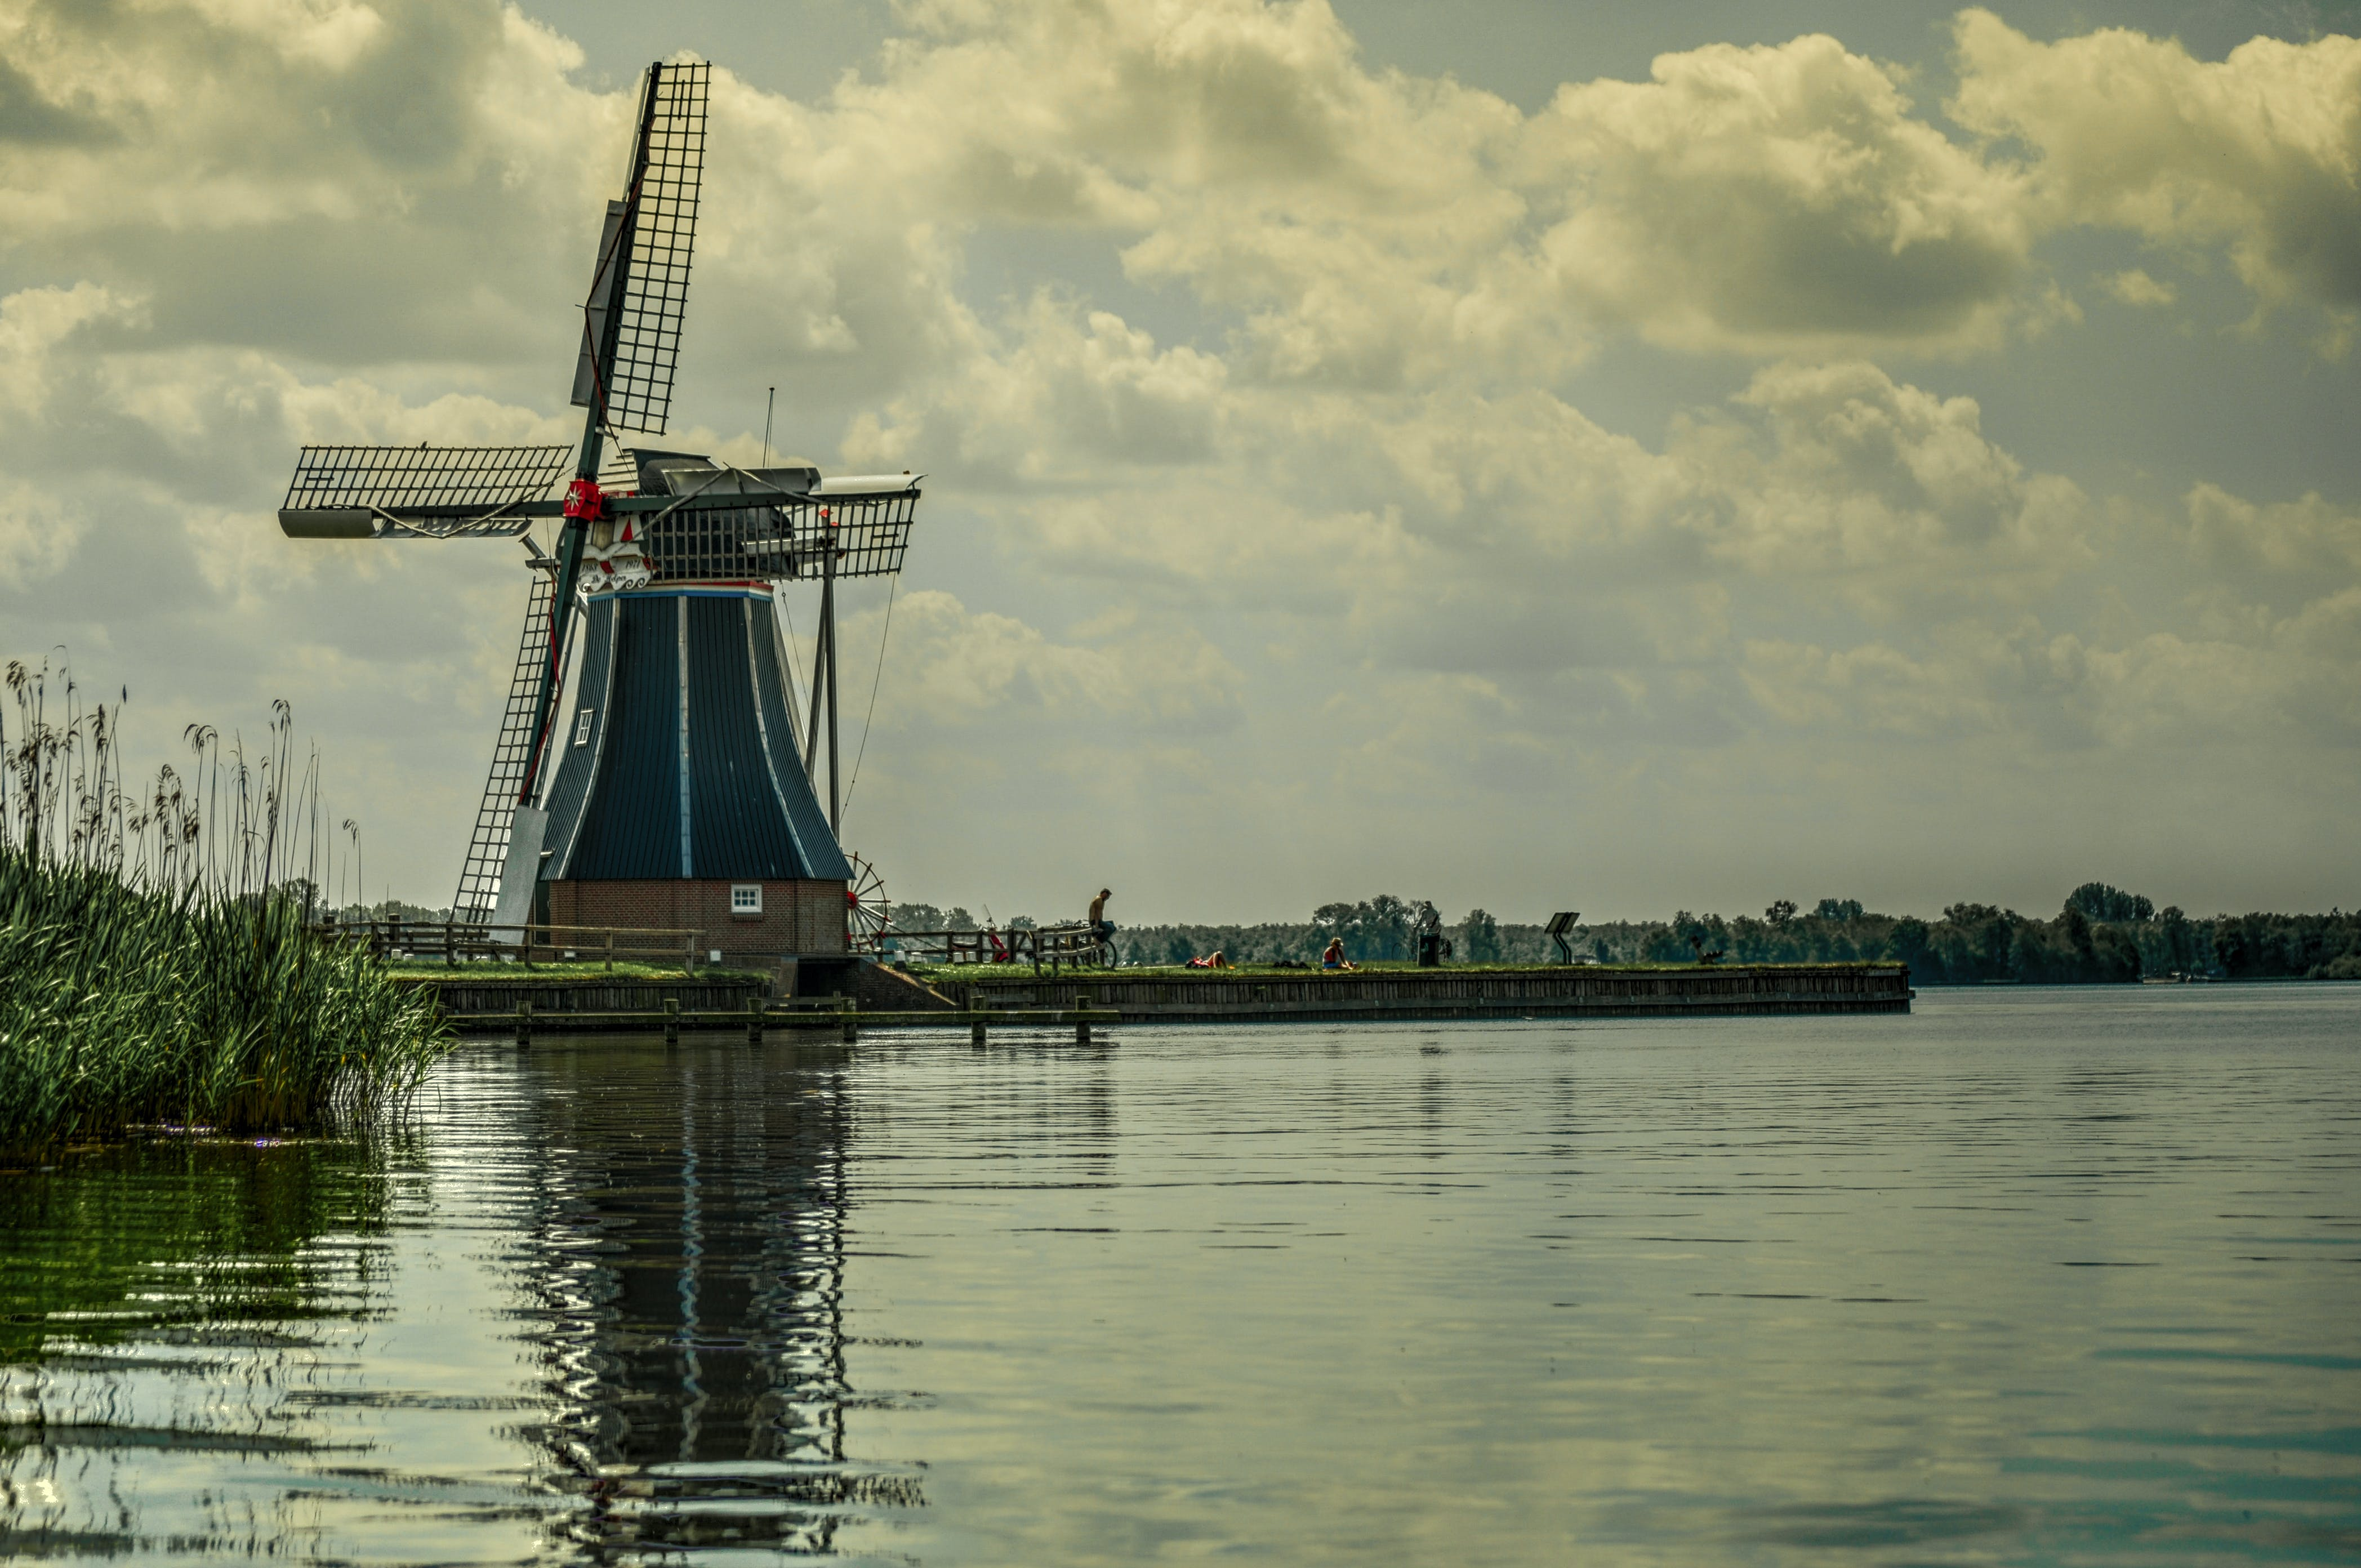 Rule of Thirds Photography of Windmill